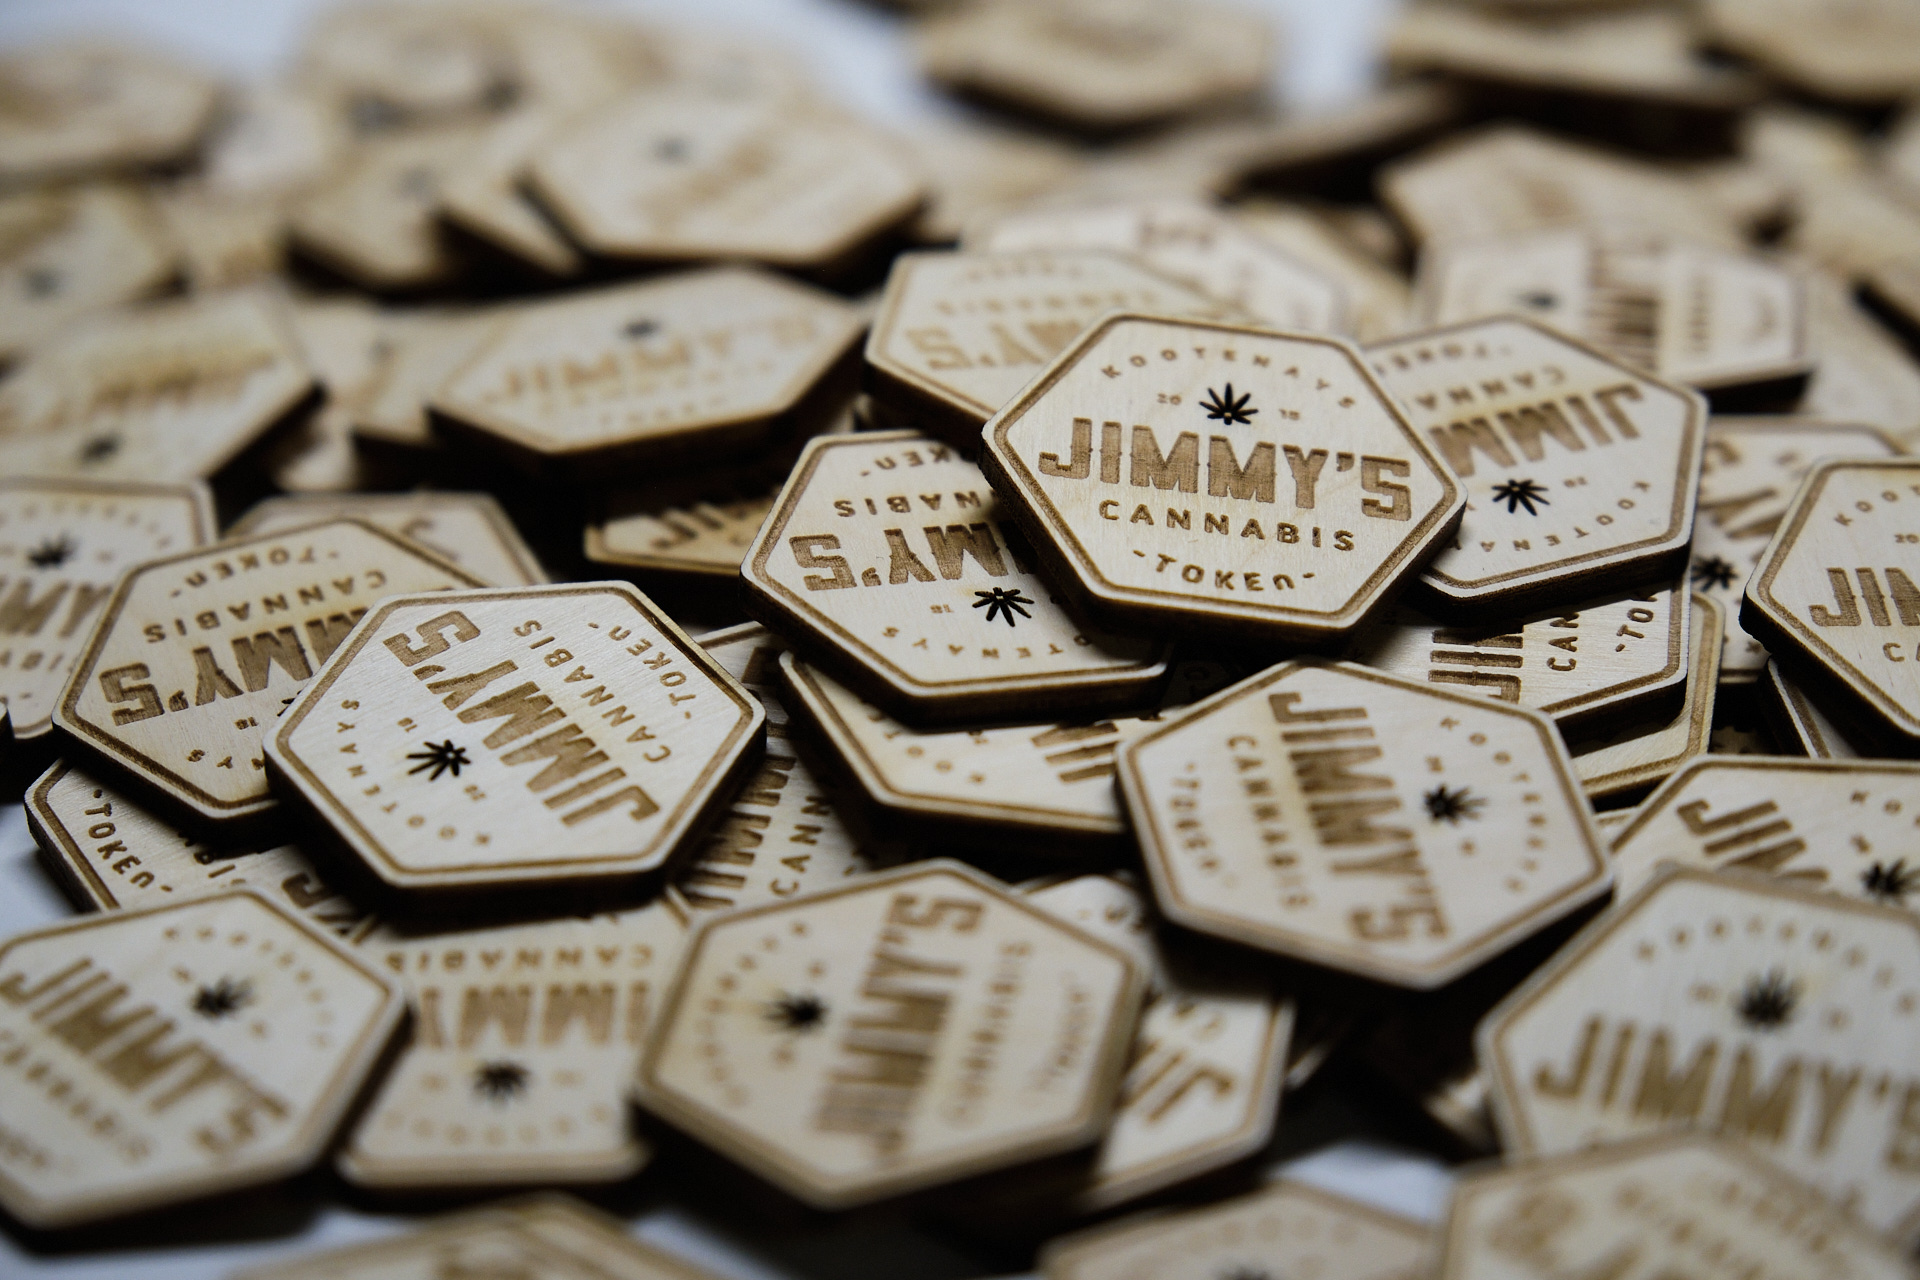 Jimmy's store tokens